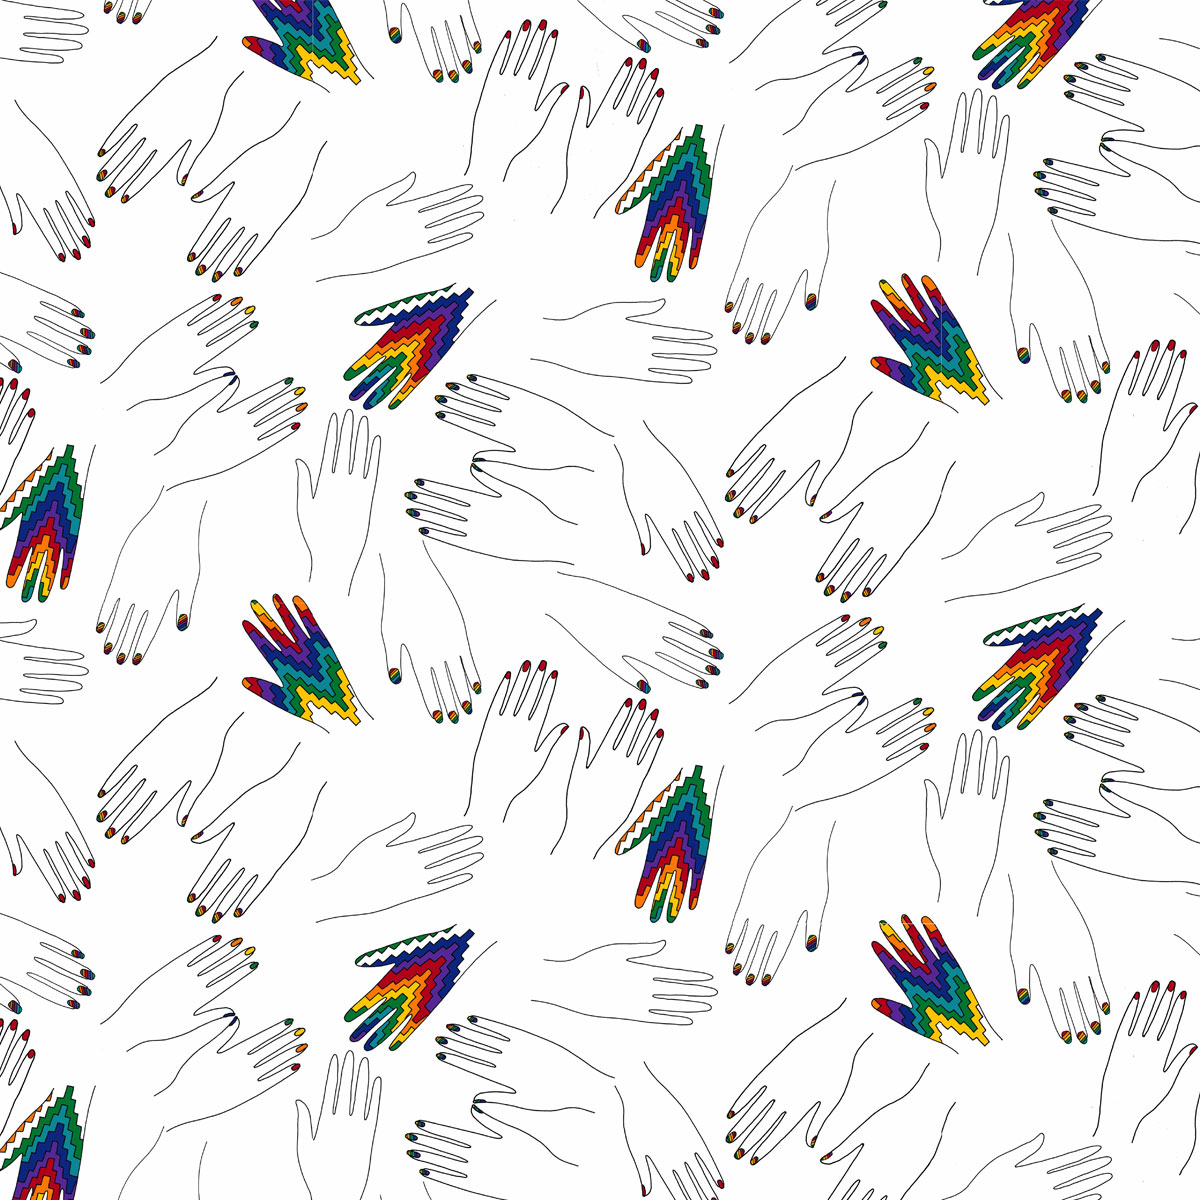 MAGIC HANDS Wallpaper in repeat